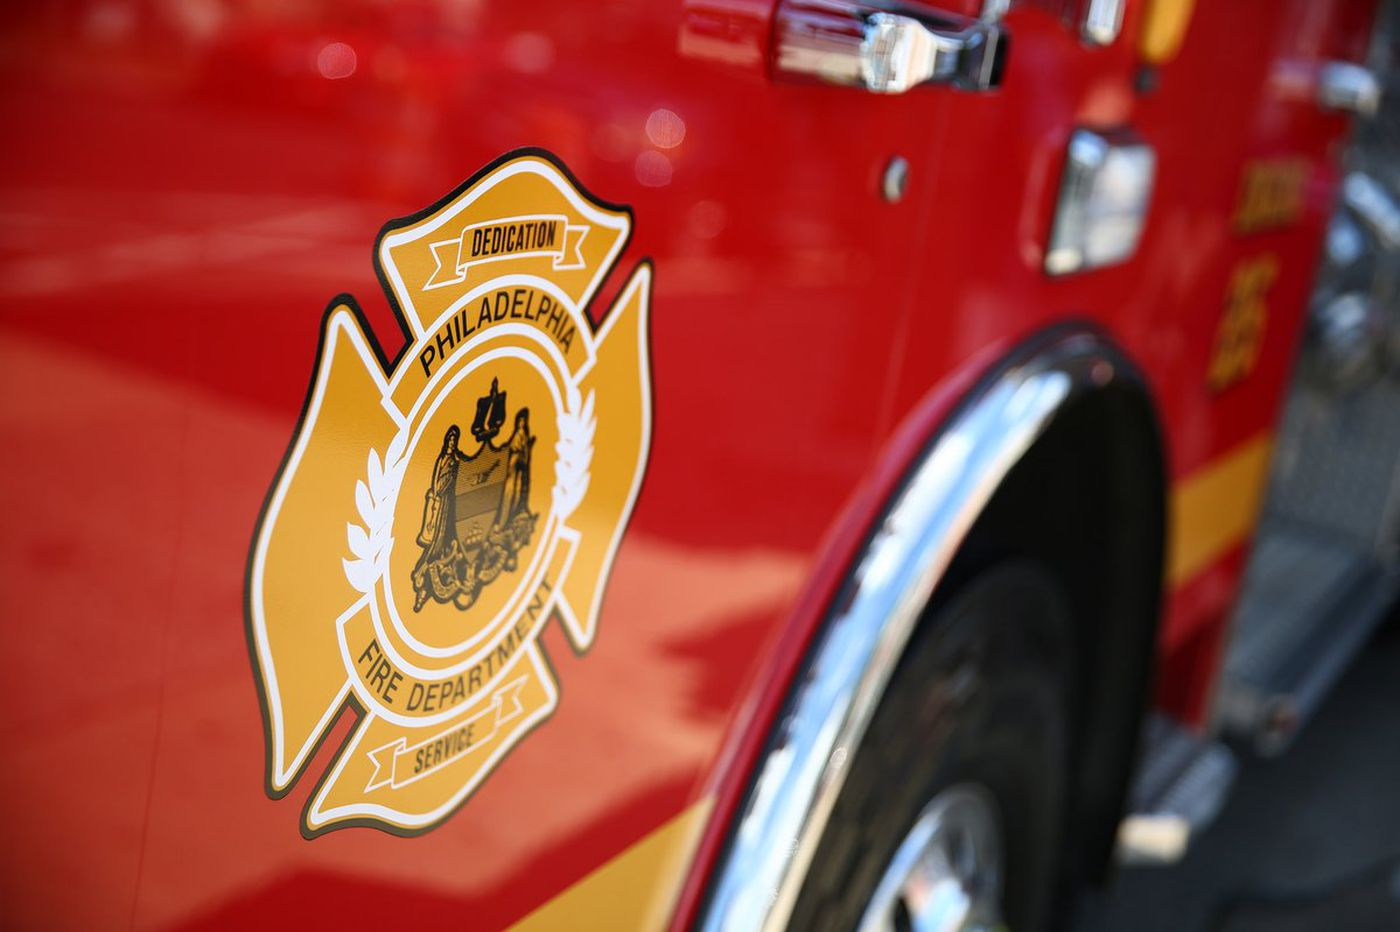 Man found dead at scene of Southwest Philly rowhouse fire